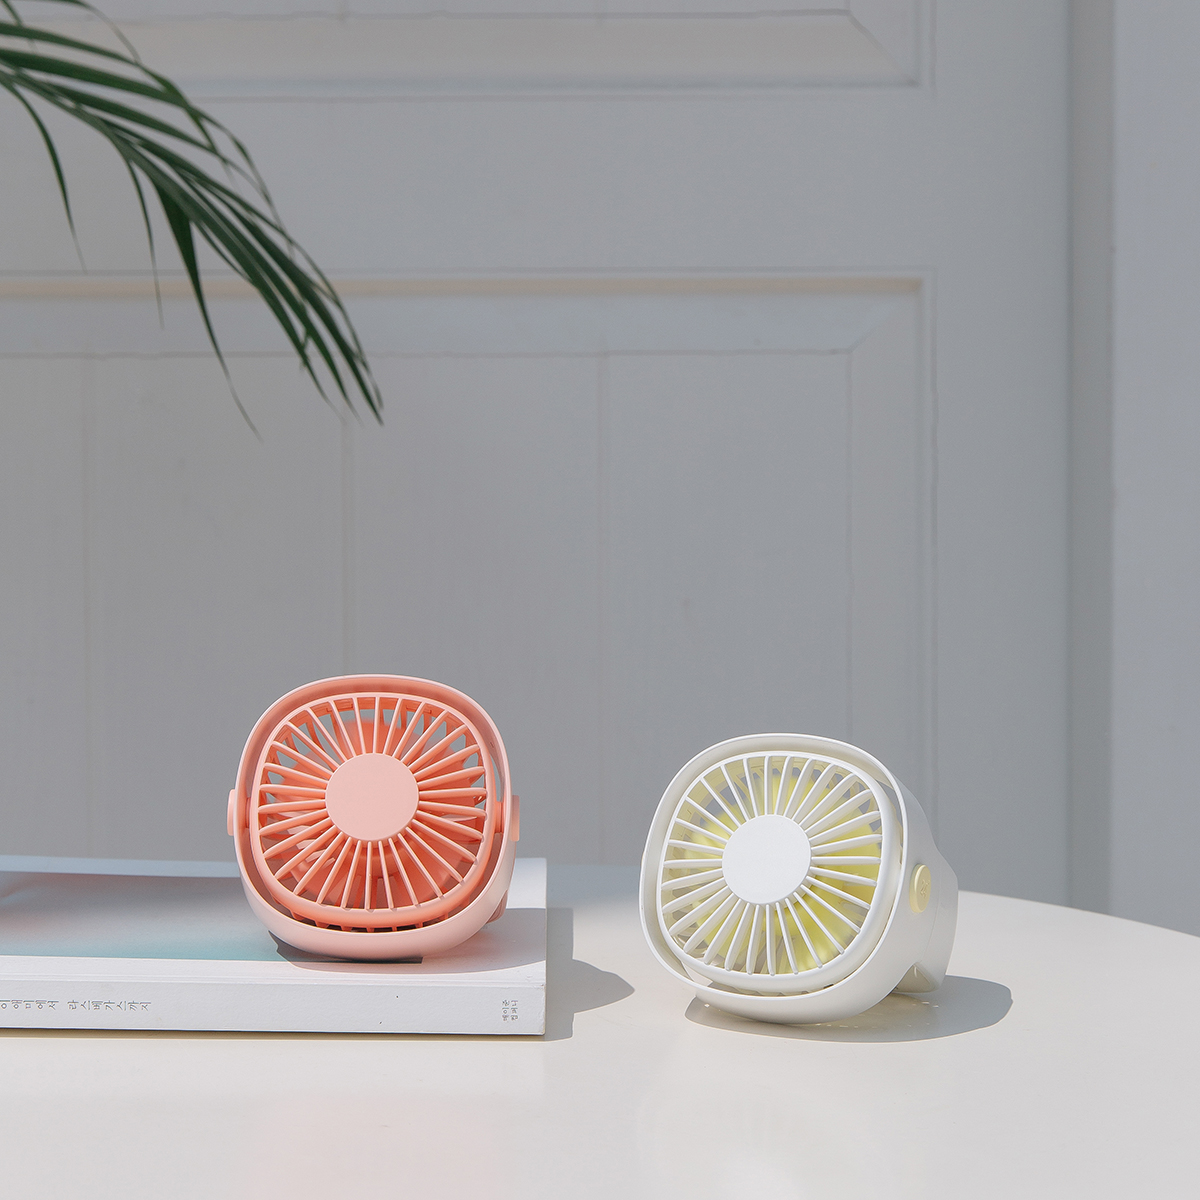 XIAOMI 3life Mini FanRotating Desktop Fan Low Noise High Wind Natural Wind USB Charge